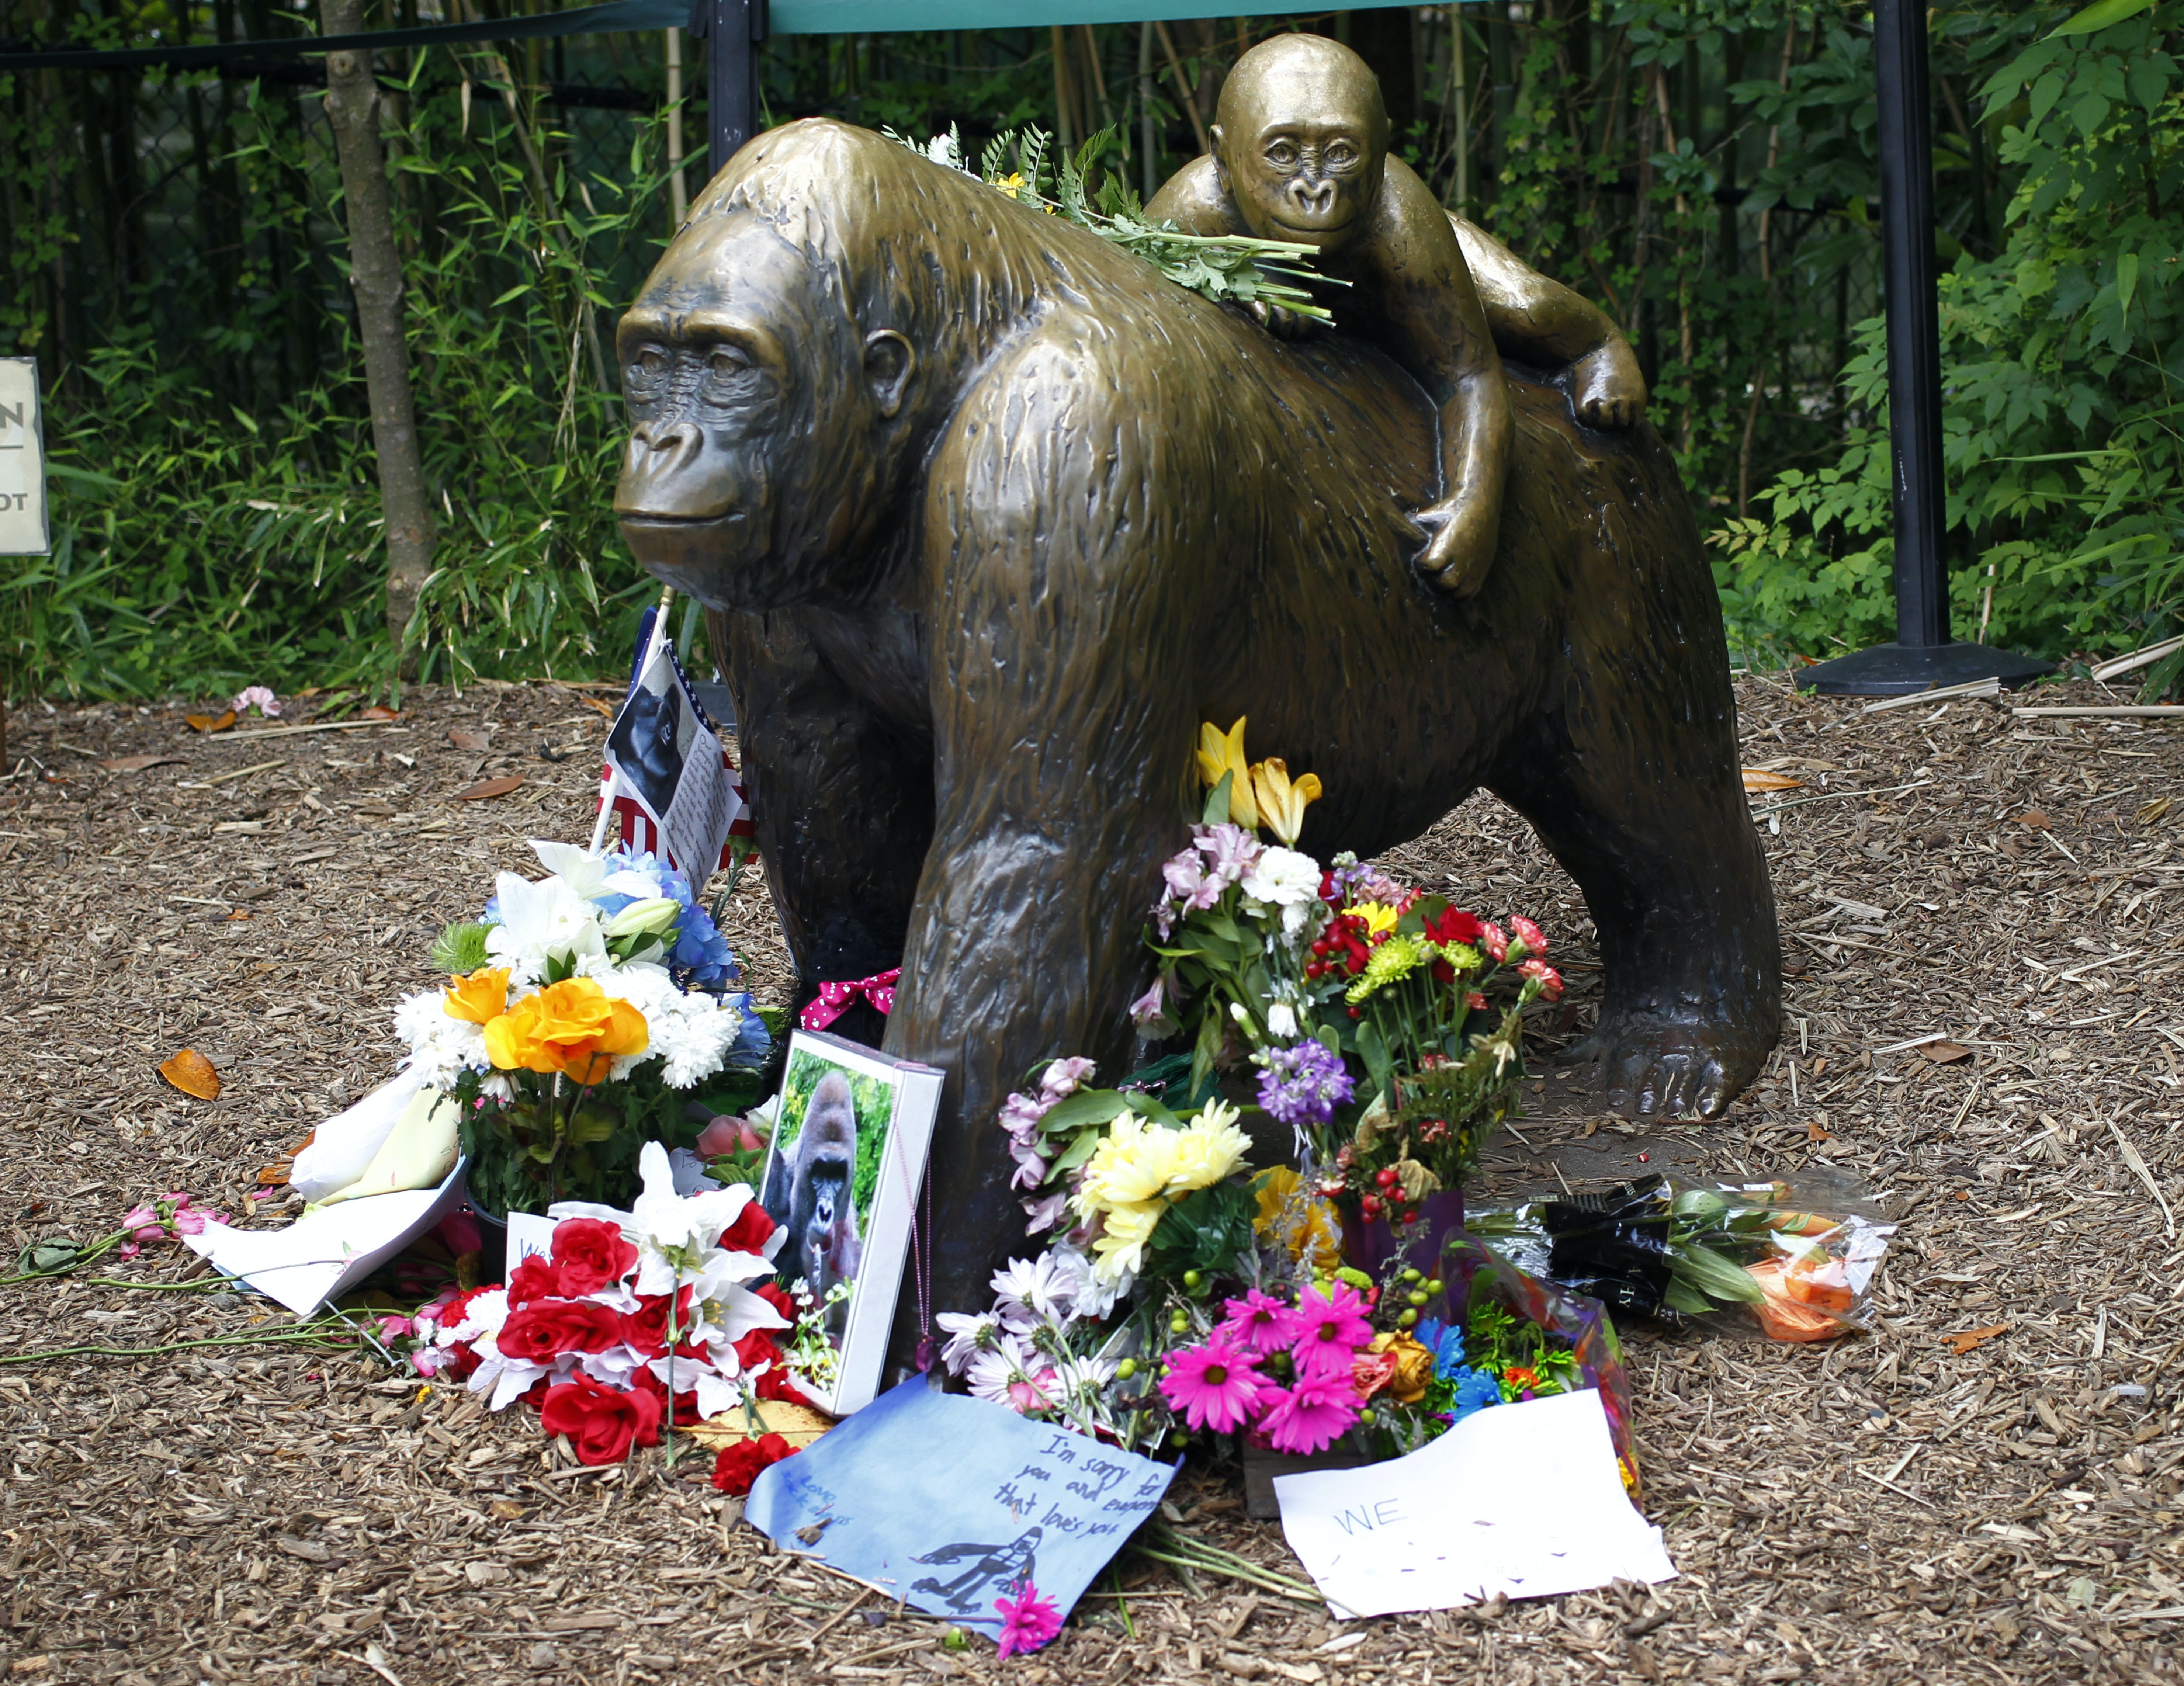 Flowers lay around a bronze statue of a gorilla and her baby outside the Cincinnati Zoo's Gorilla World exhibit days after a 3-year-old boy fell into the moat and officials were forced to kill Harambe, a 17-year-old Western lowland silverback gorilla June 2.